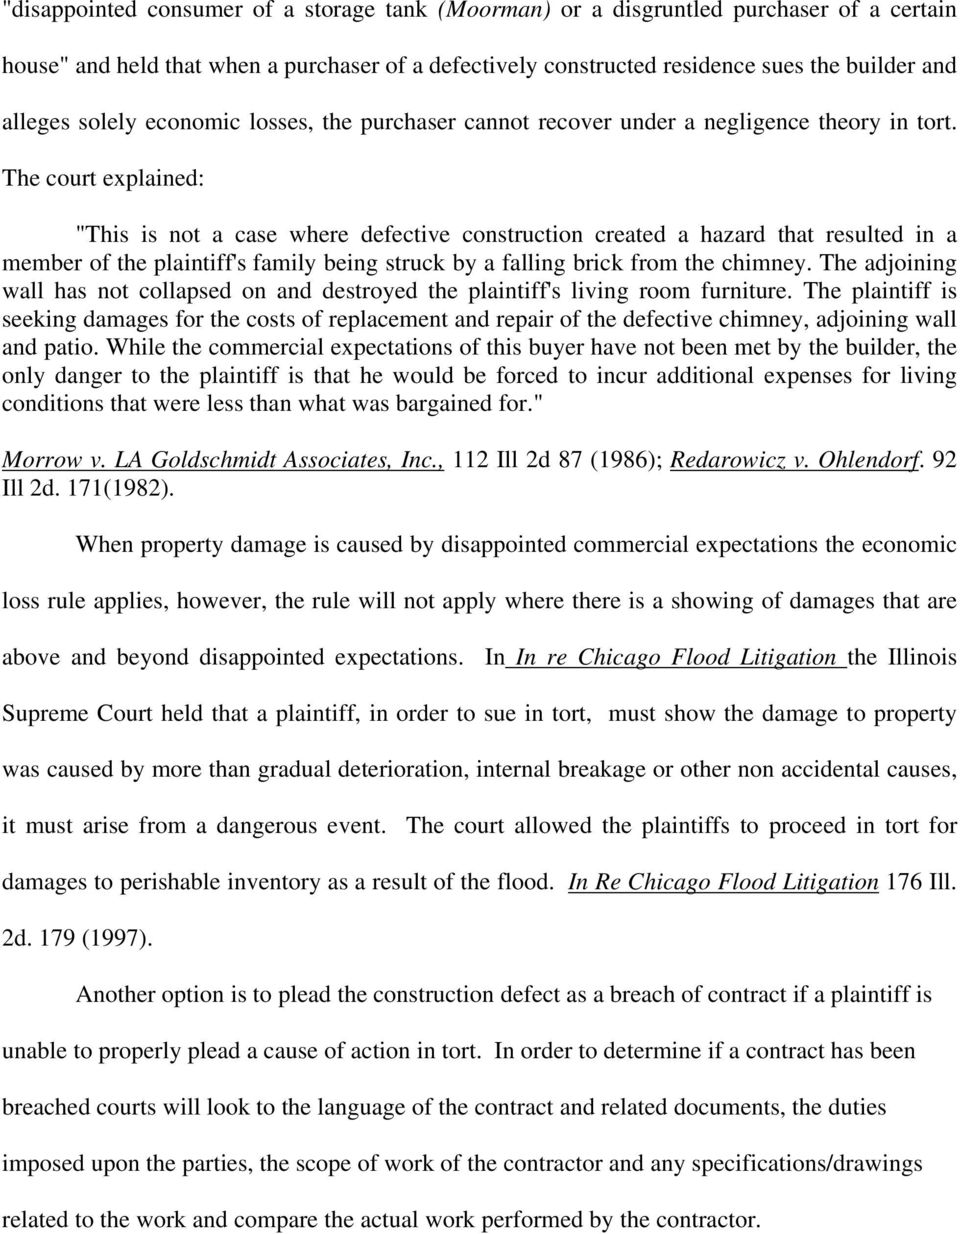 "The court explained: ""This is not a case where defective construction created a hazard that resulted in a member of the plaintiff's family being struck by a falling brick from the chimney."